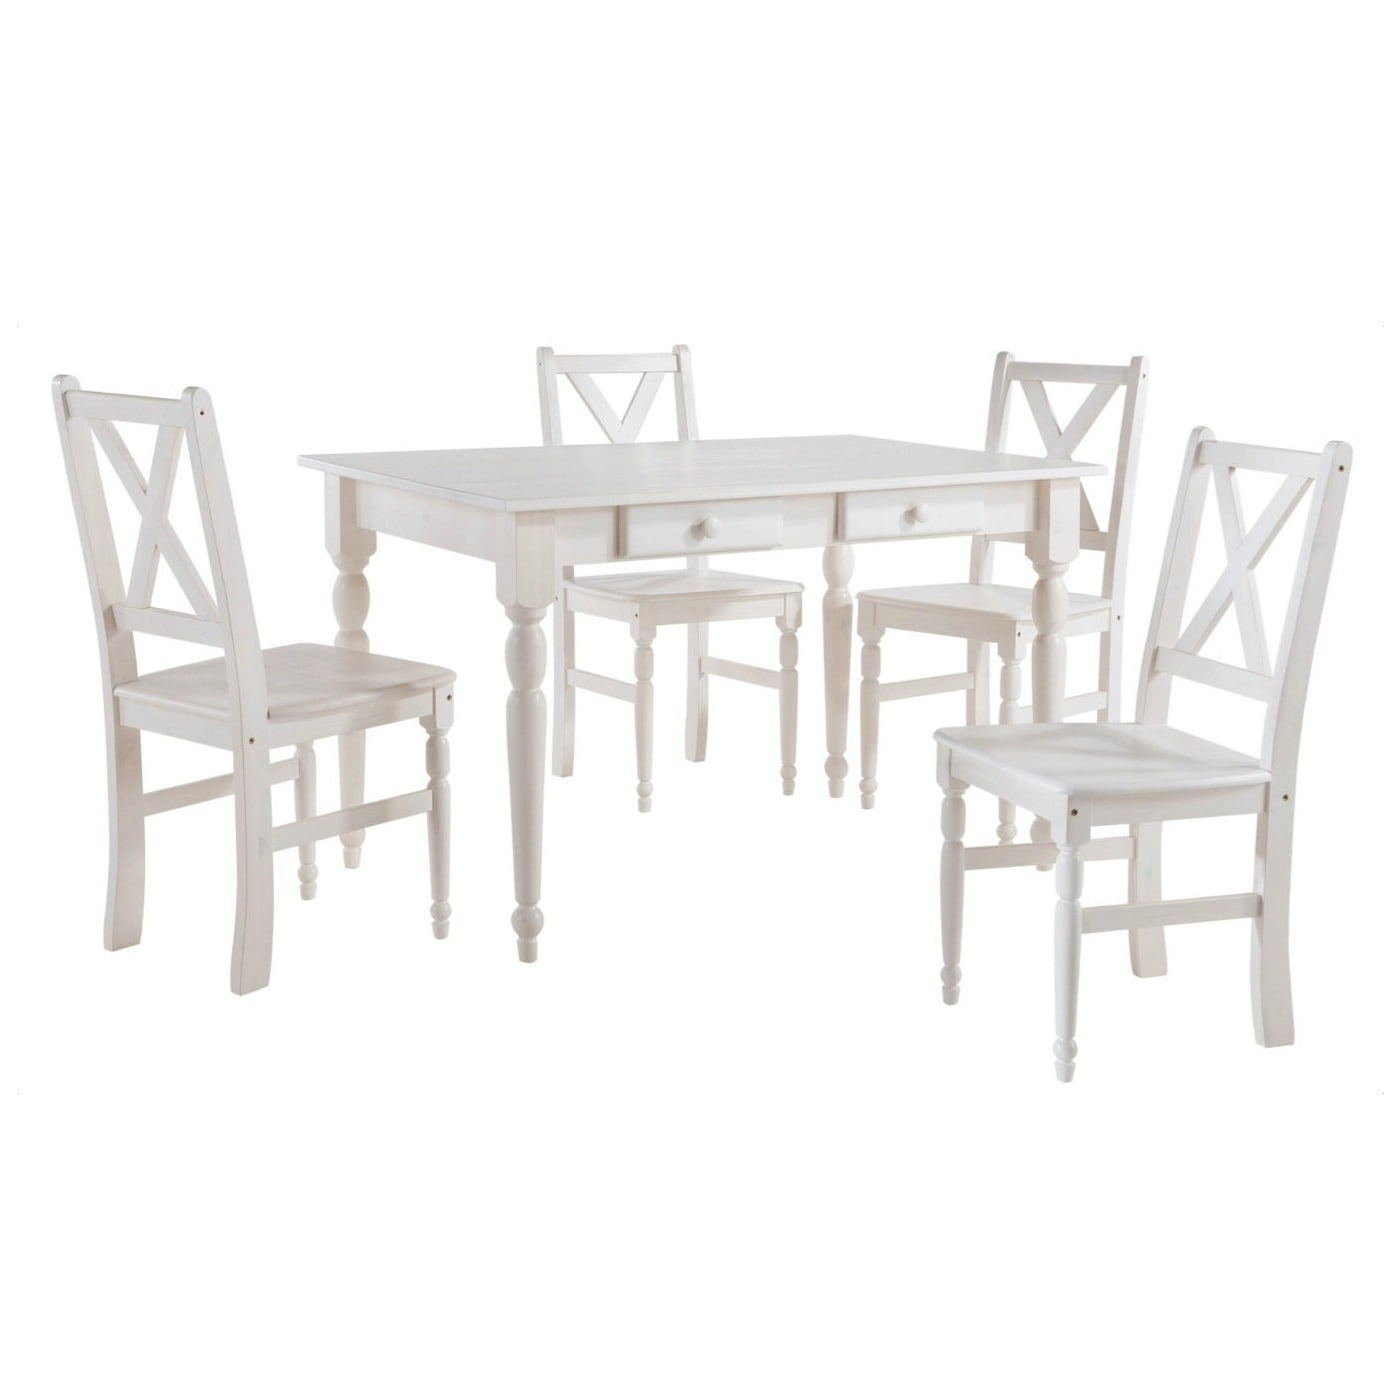 Scandinavian Lifestyle Noah Dining Table With Drawers